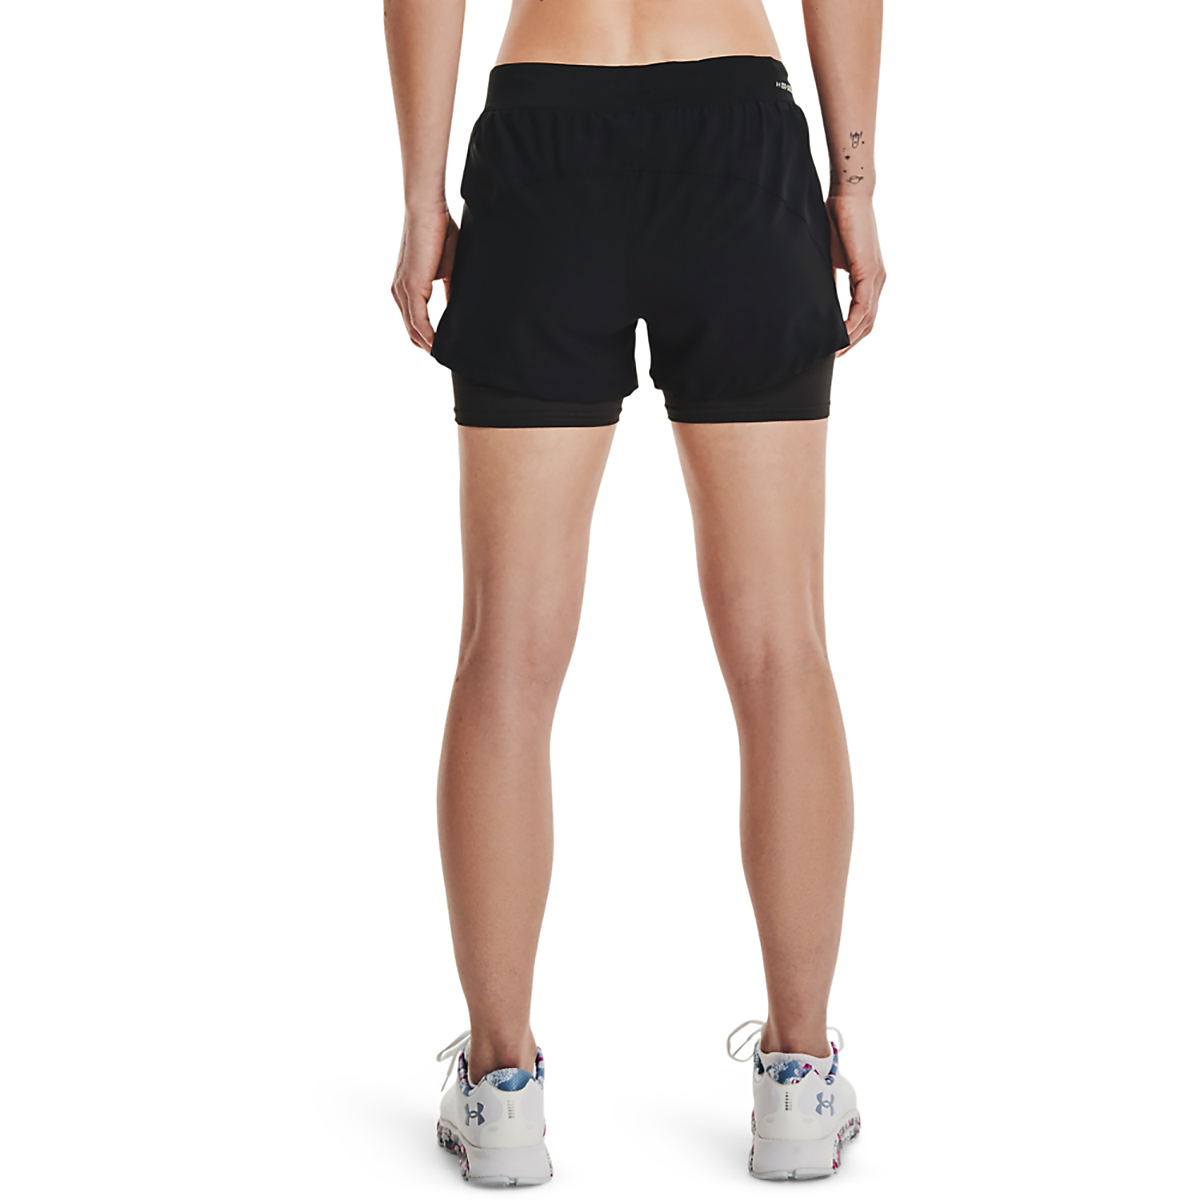 Women's Under Armour Isochill Run 2 in 1 Short - Color: Black/Black - Size: XS, Black/Black, large, image 2